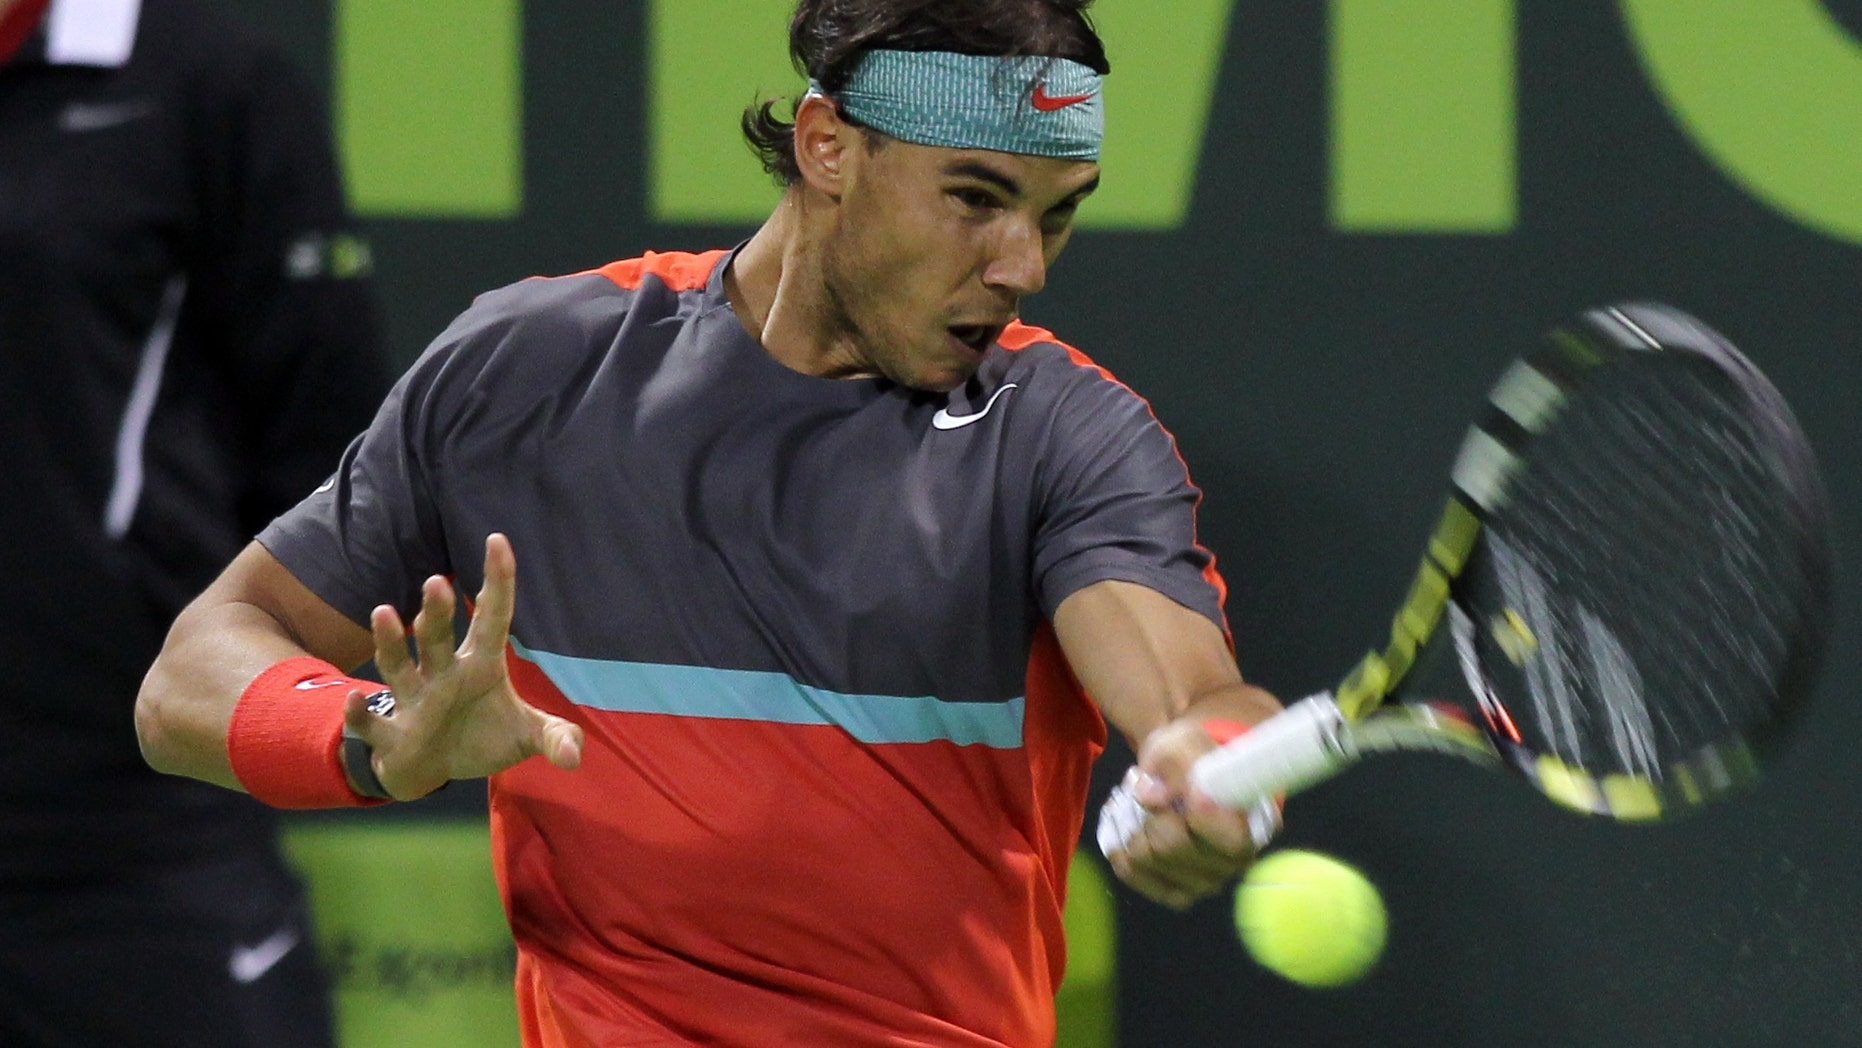 Rafael Nadal  in the semifinal match of the Qatar Open on Friday, Jan. 3, 2014.